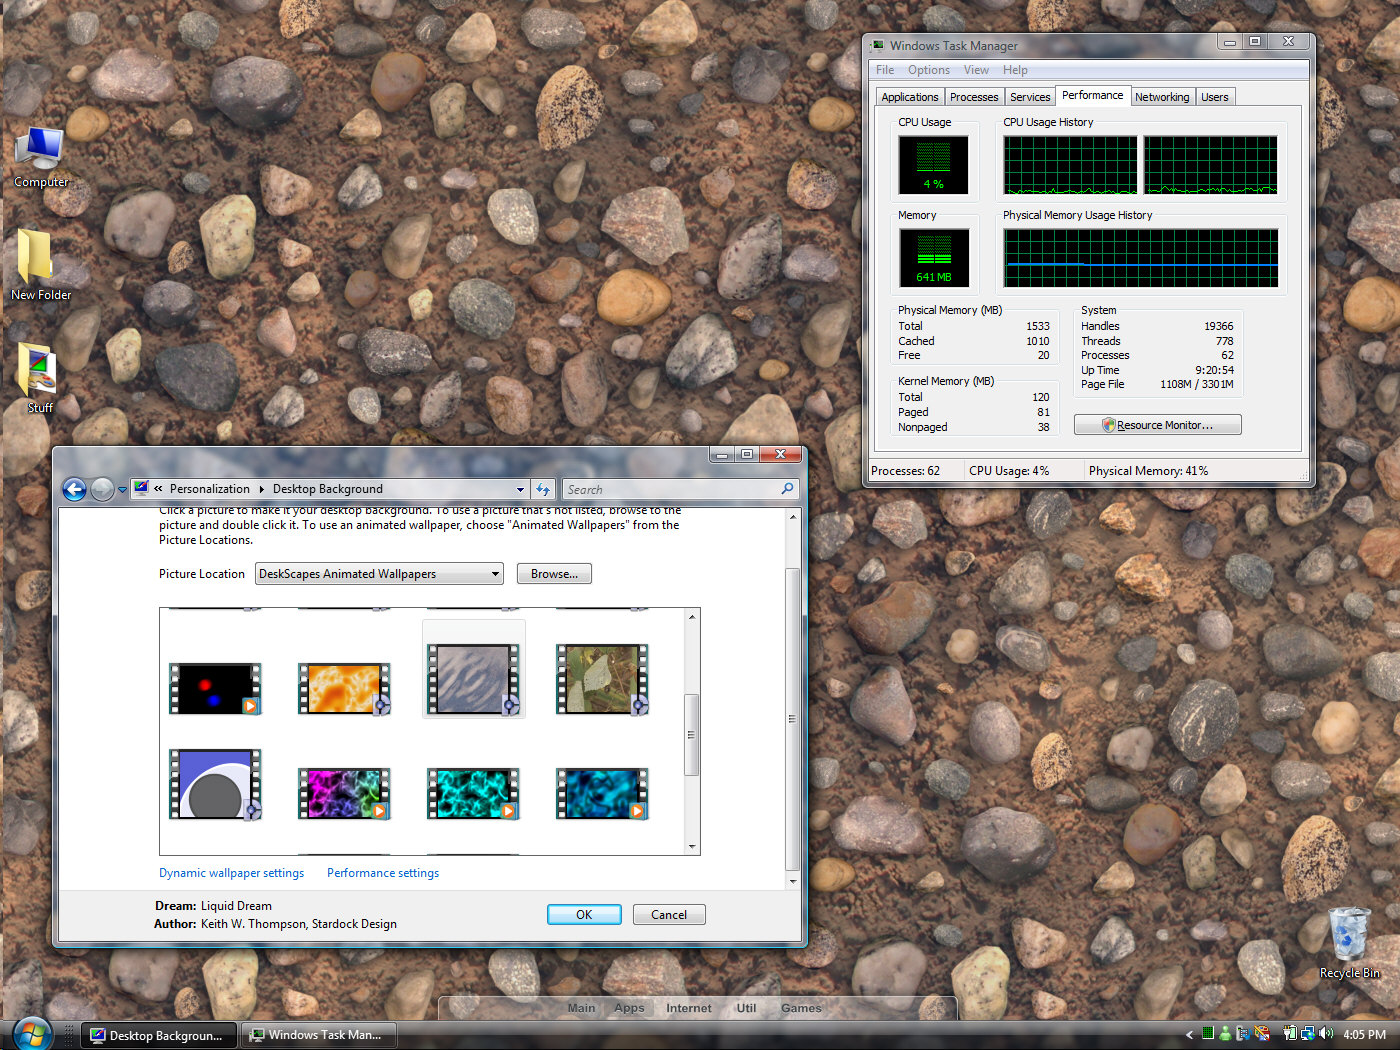 But now Stardock is bringing animated wallpapers to the Vista masses.